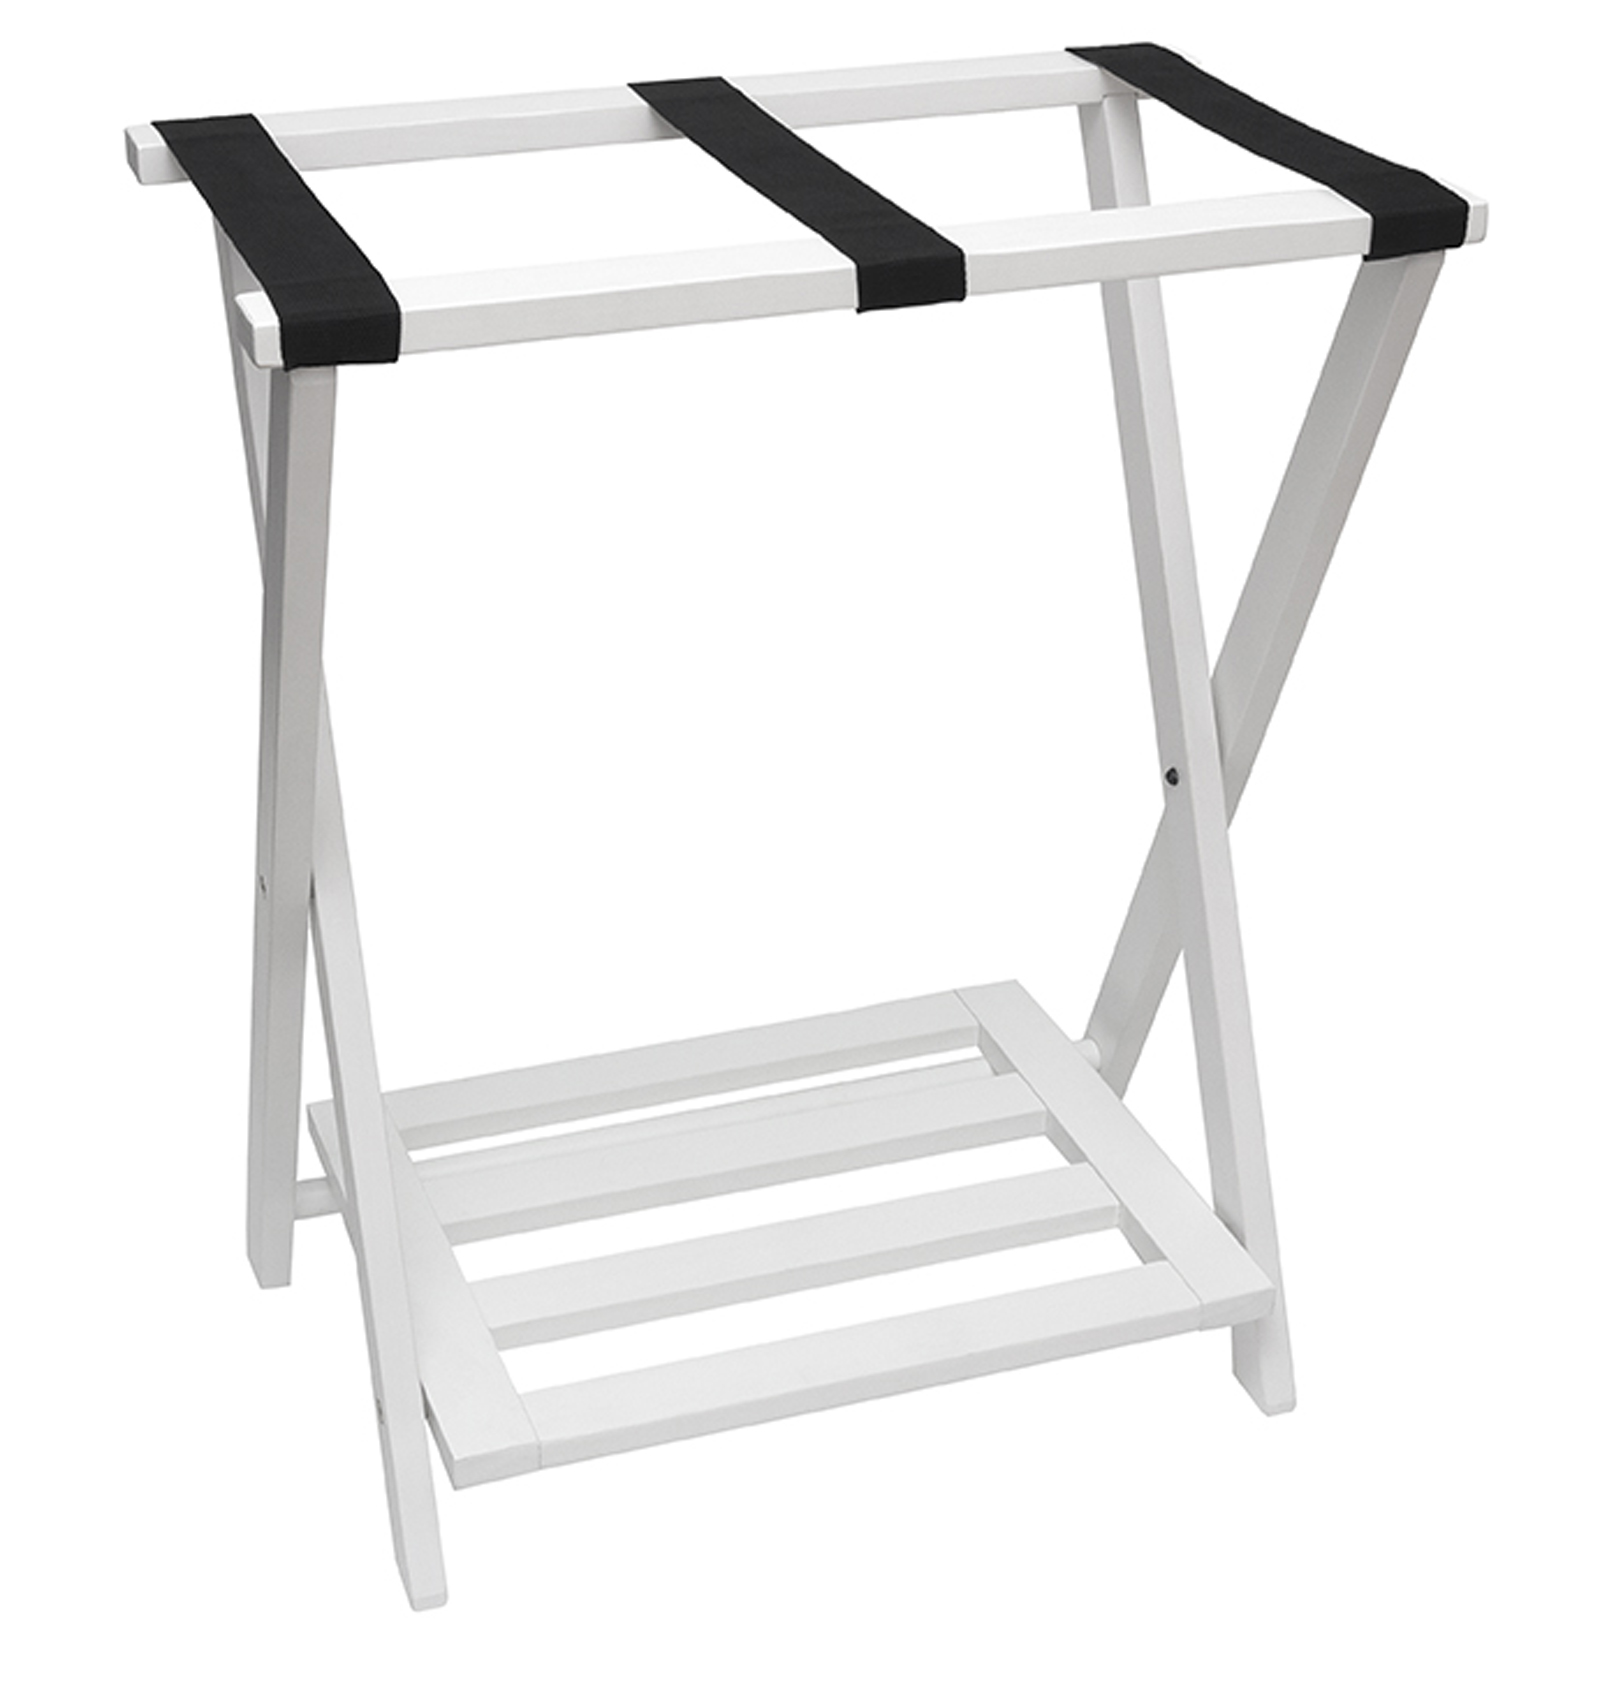 Lipper Right Height Luggage Rack with Shoe Rack - White finish